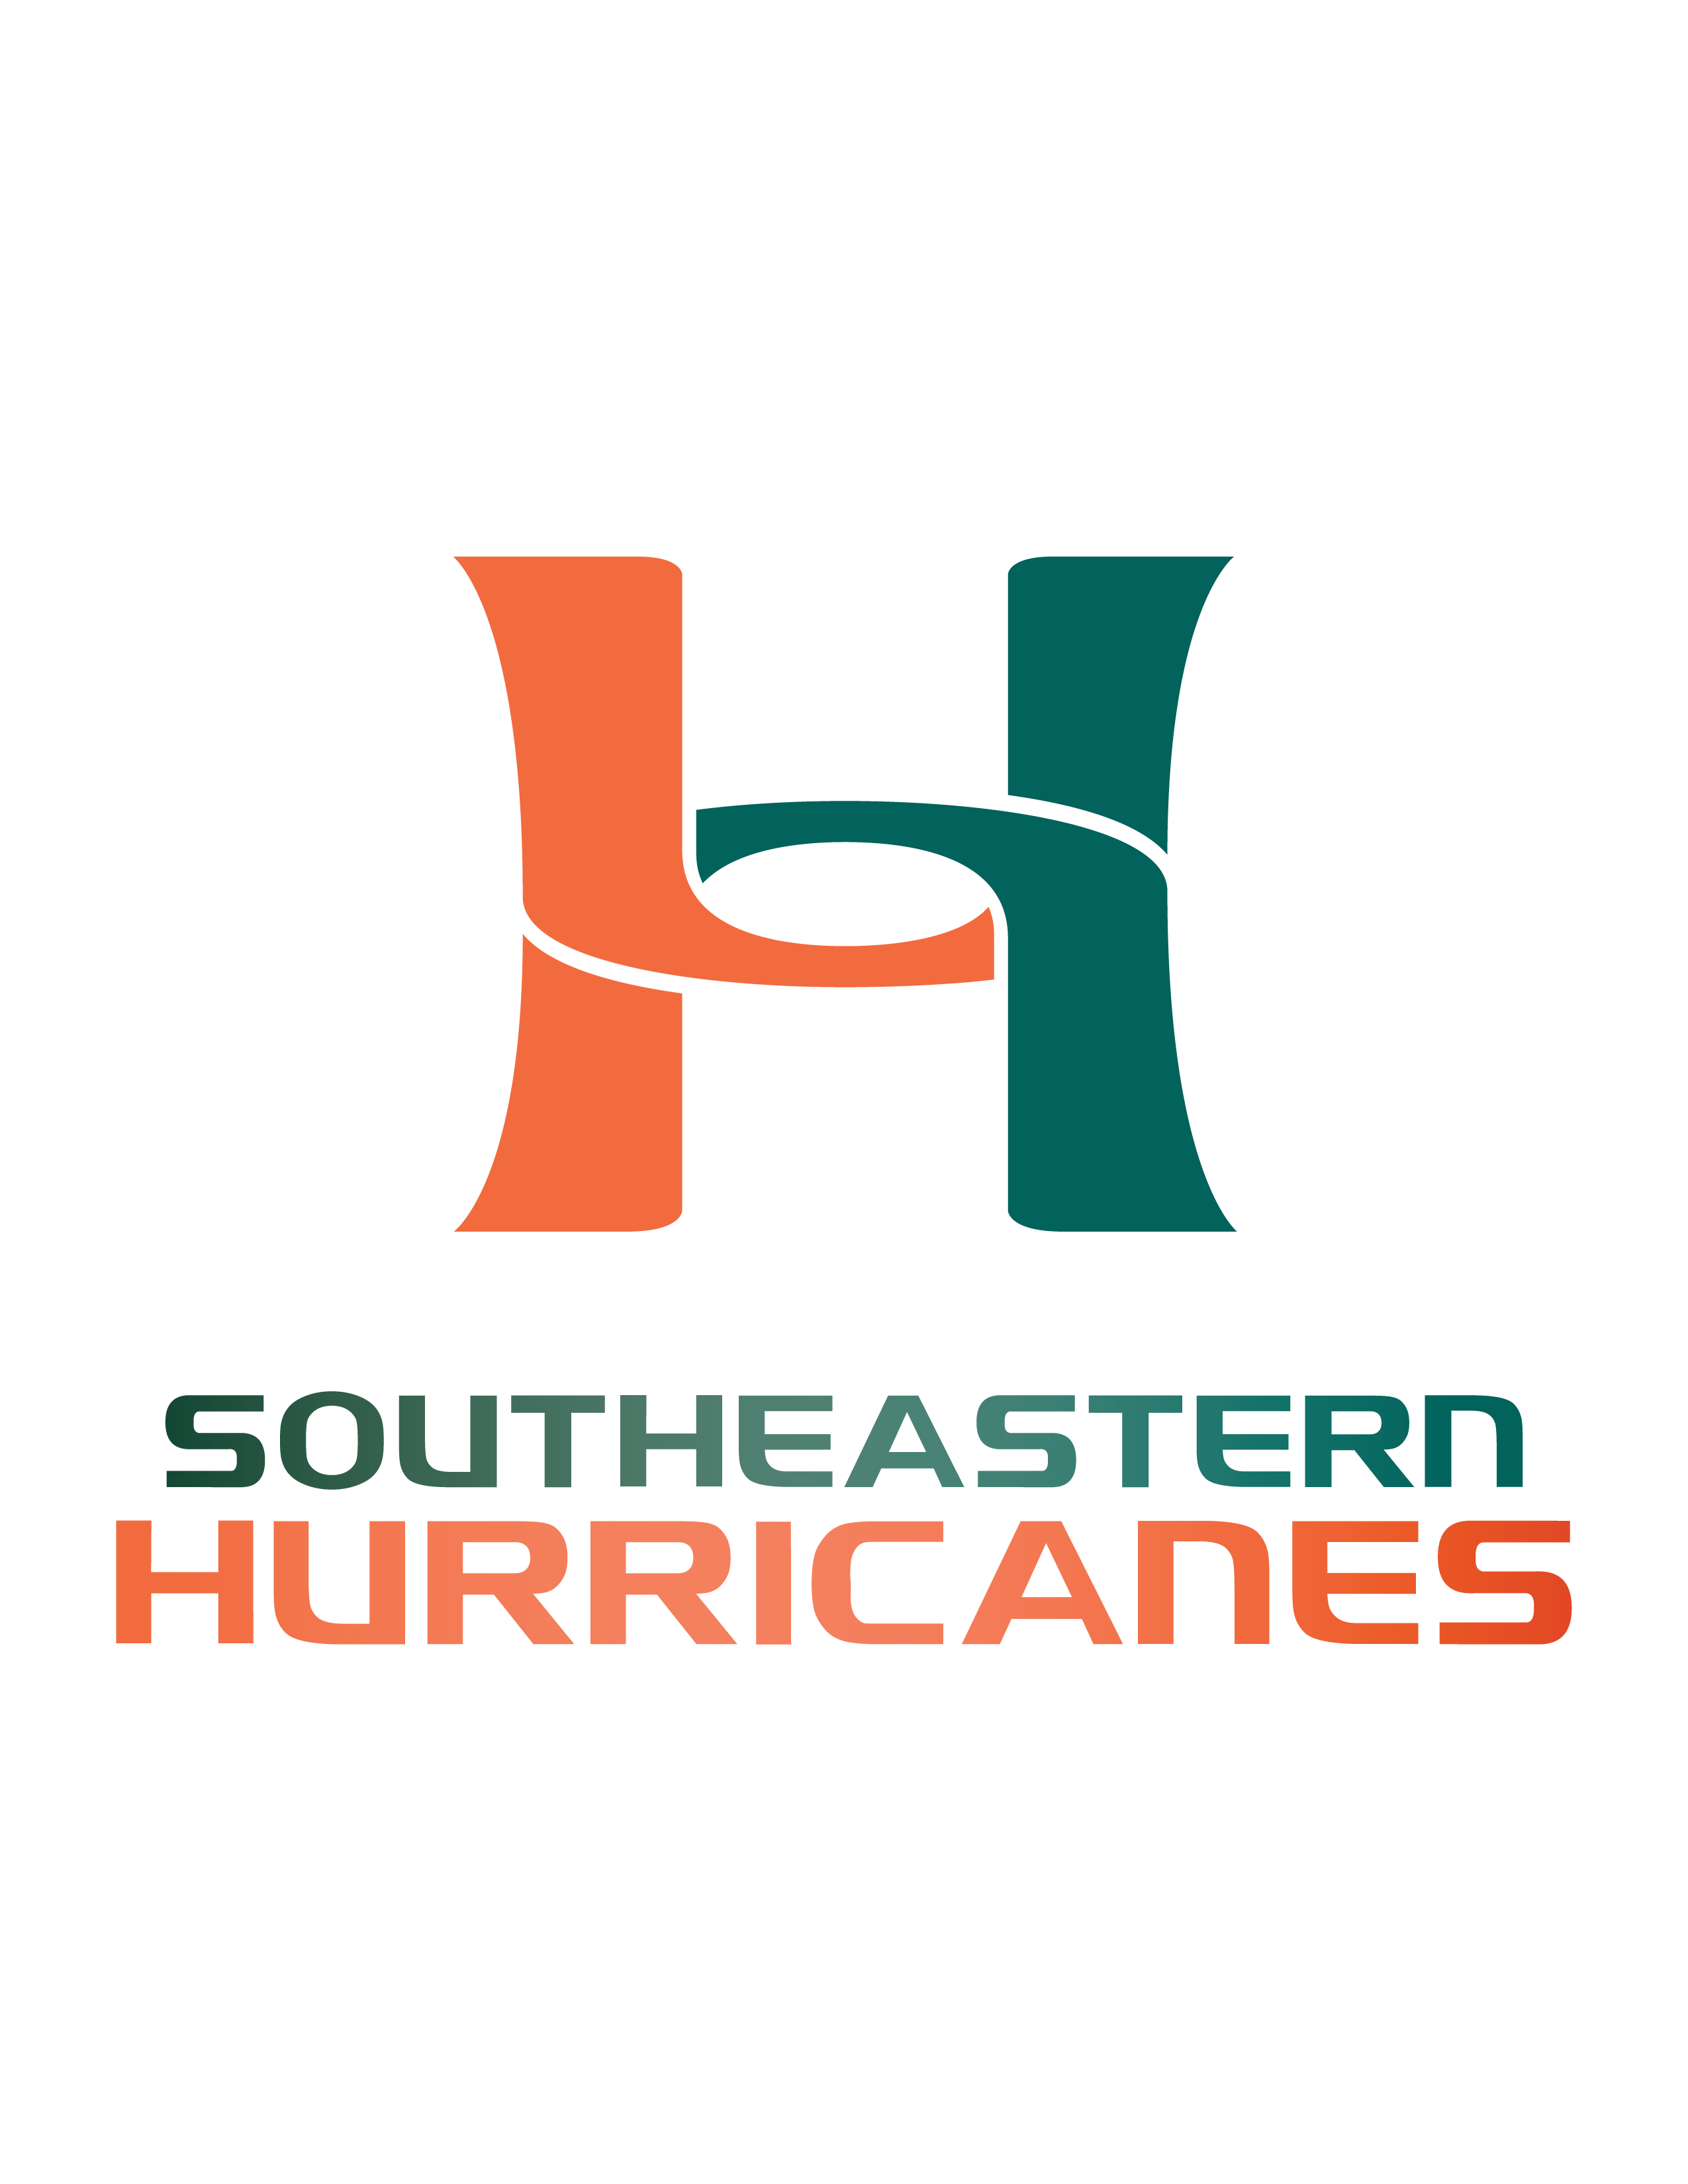 Hurricanes Logo with Lettering